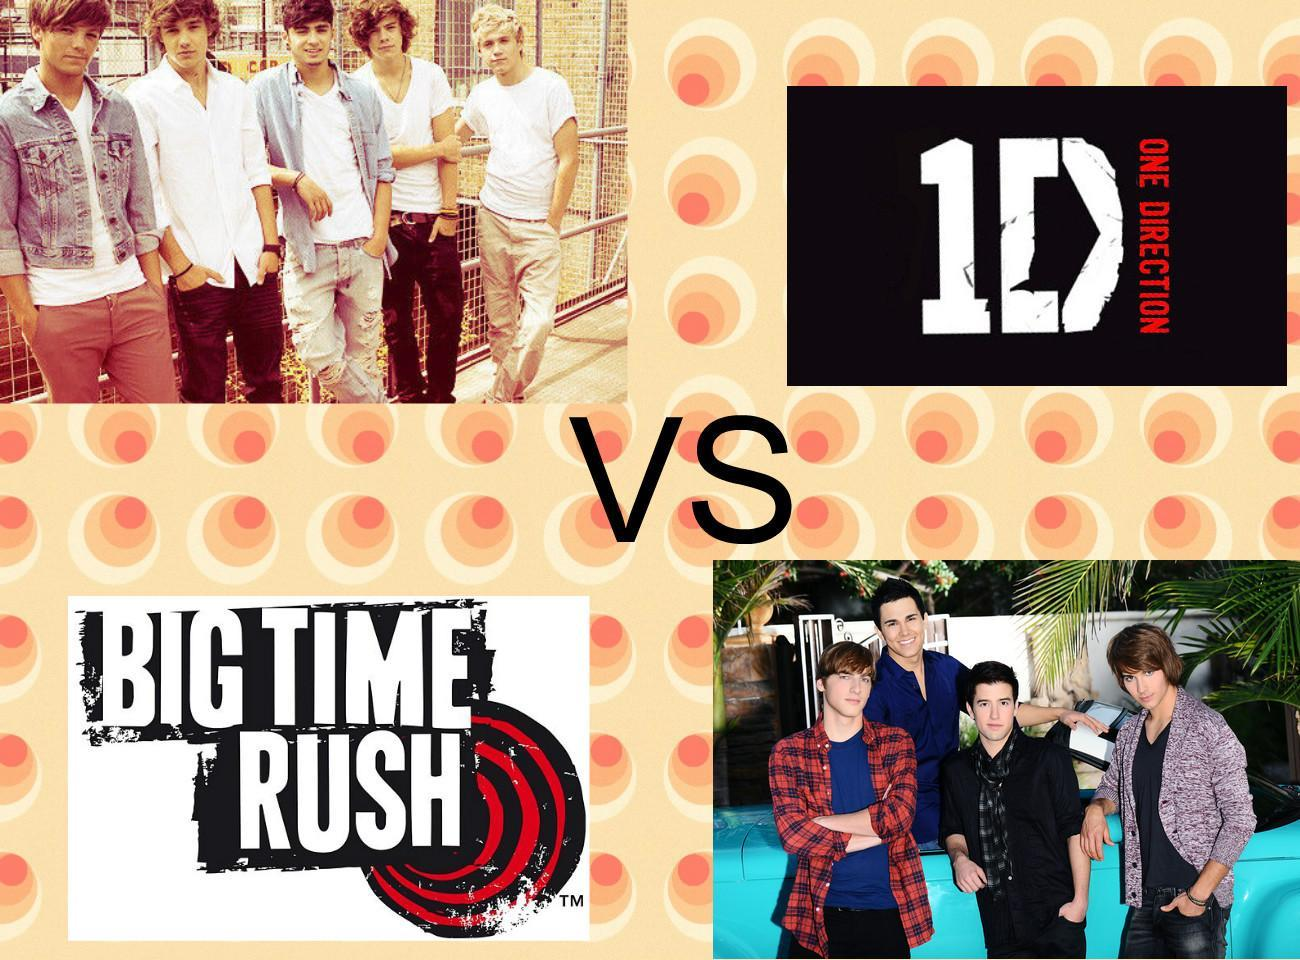 whos better 1d or btr